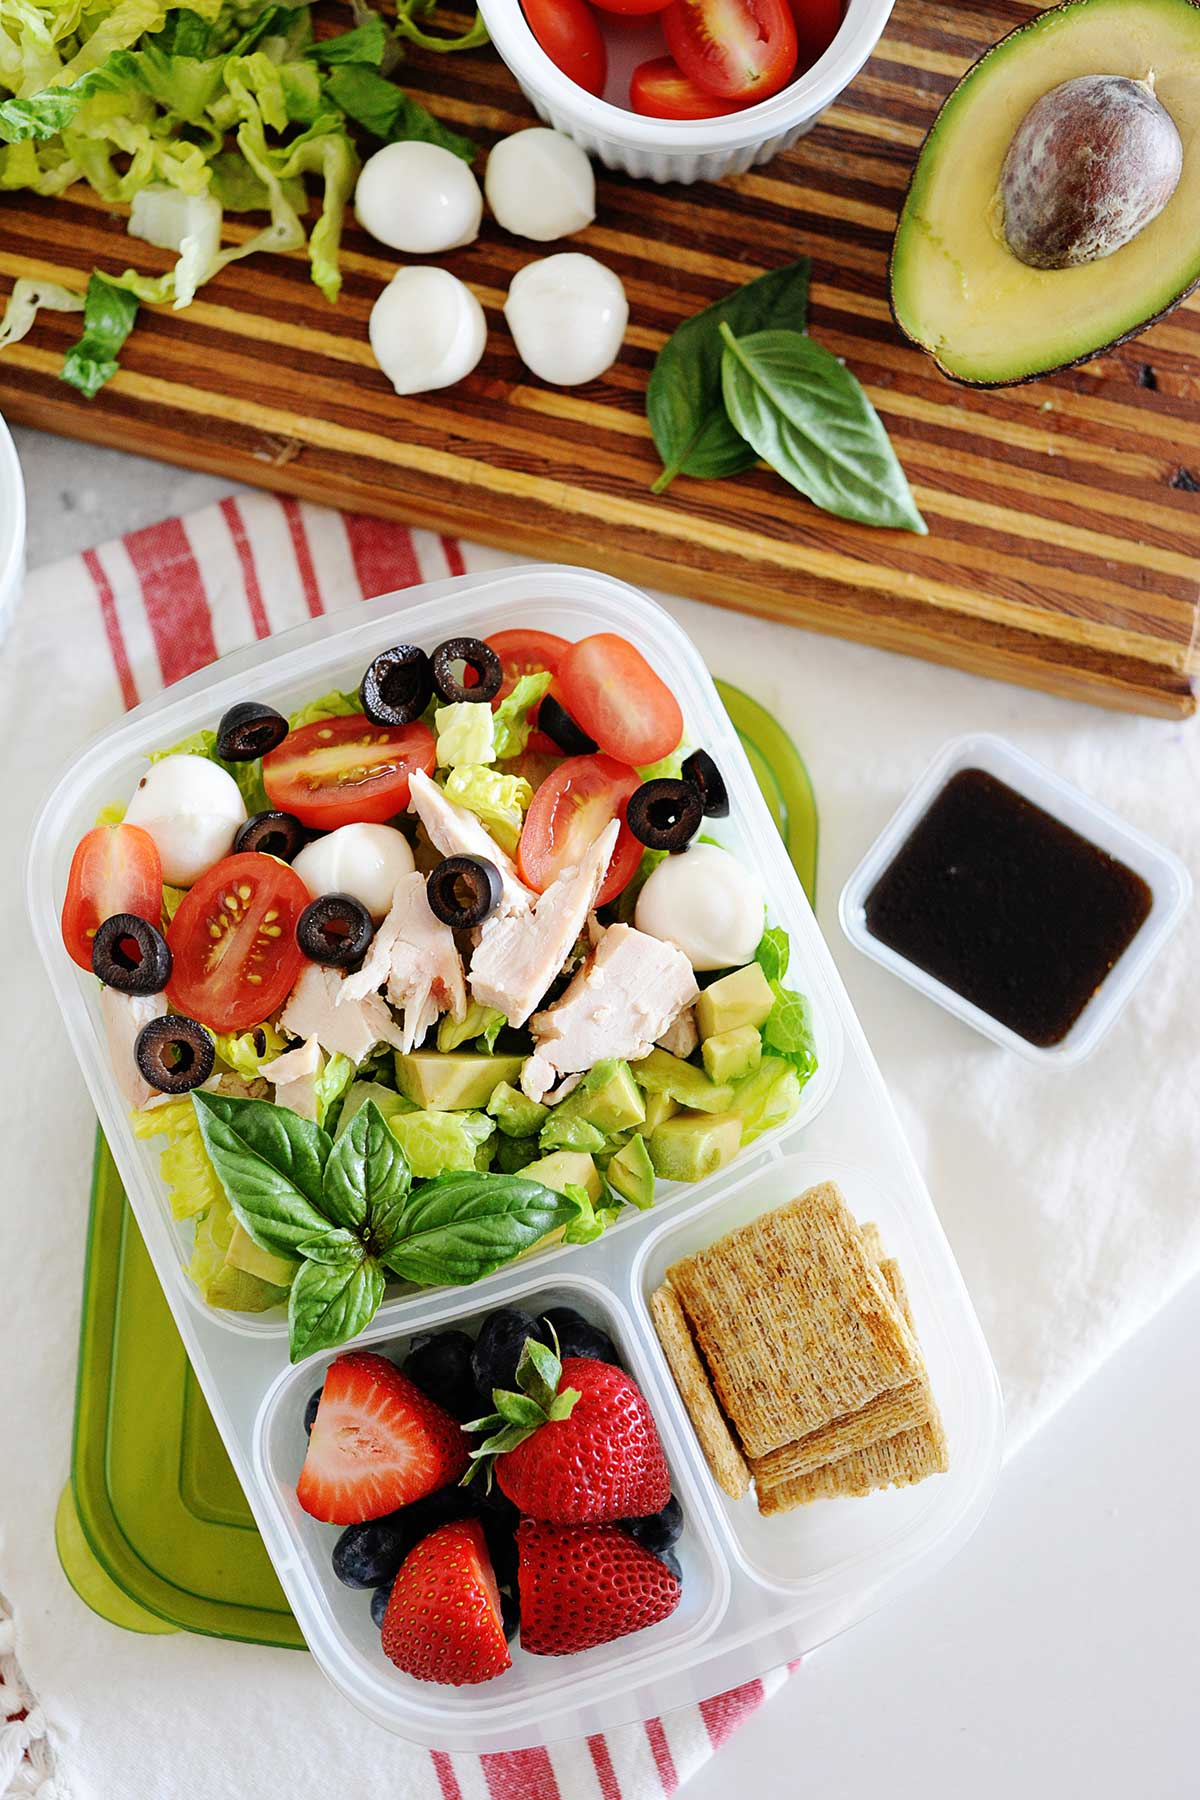 chicken caprese sald in a lunch container with berries and crackers